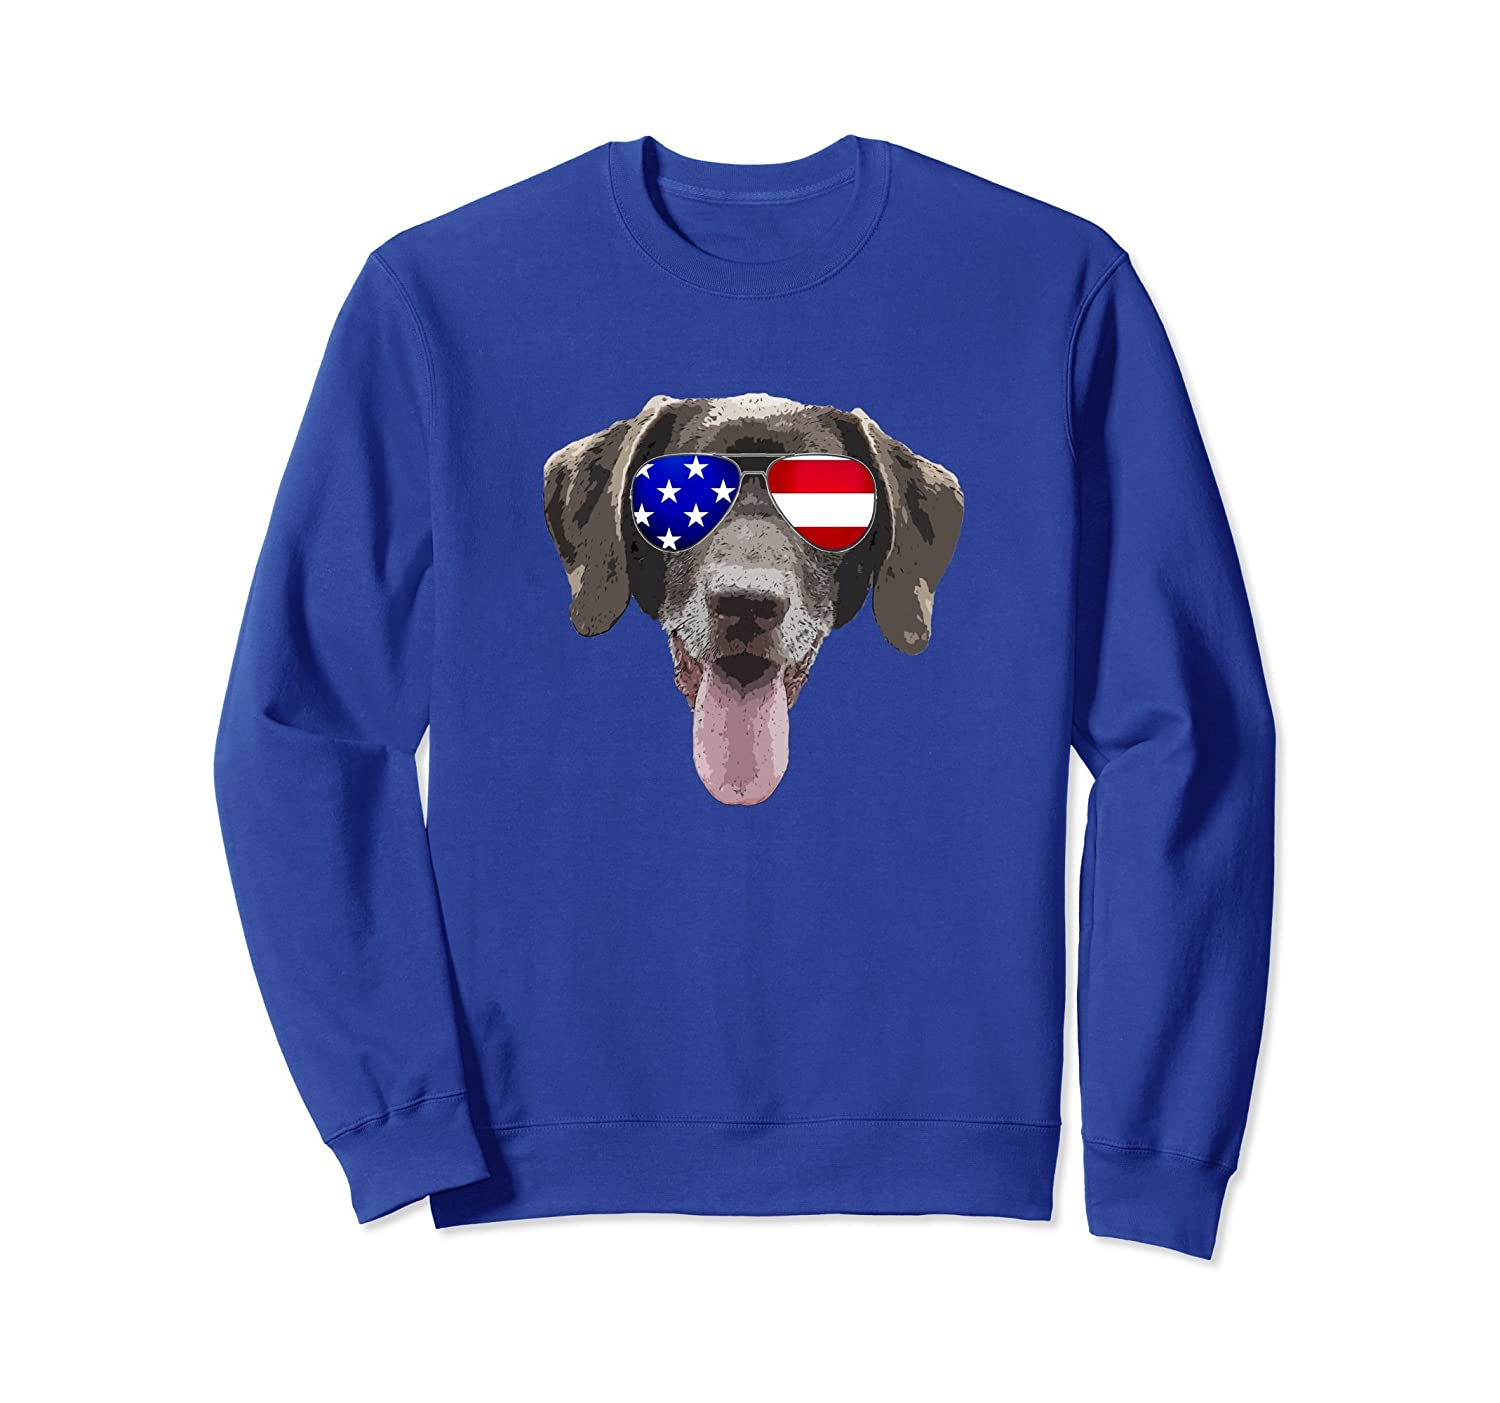 Chocolate Lab Dog Sweatshirt with USA flag sunglasses-AZP